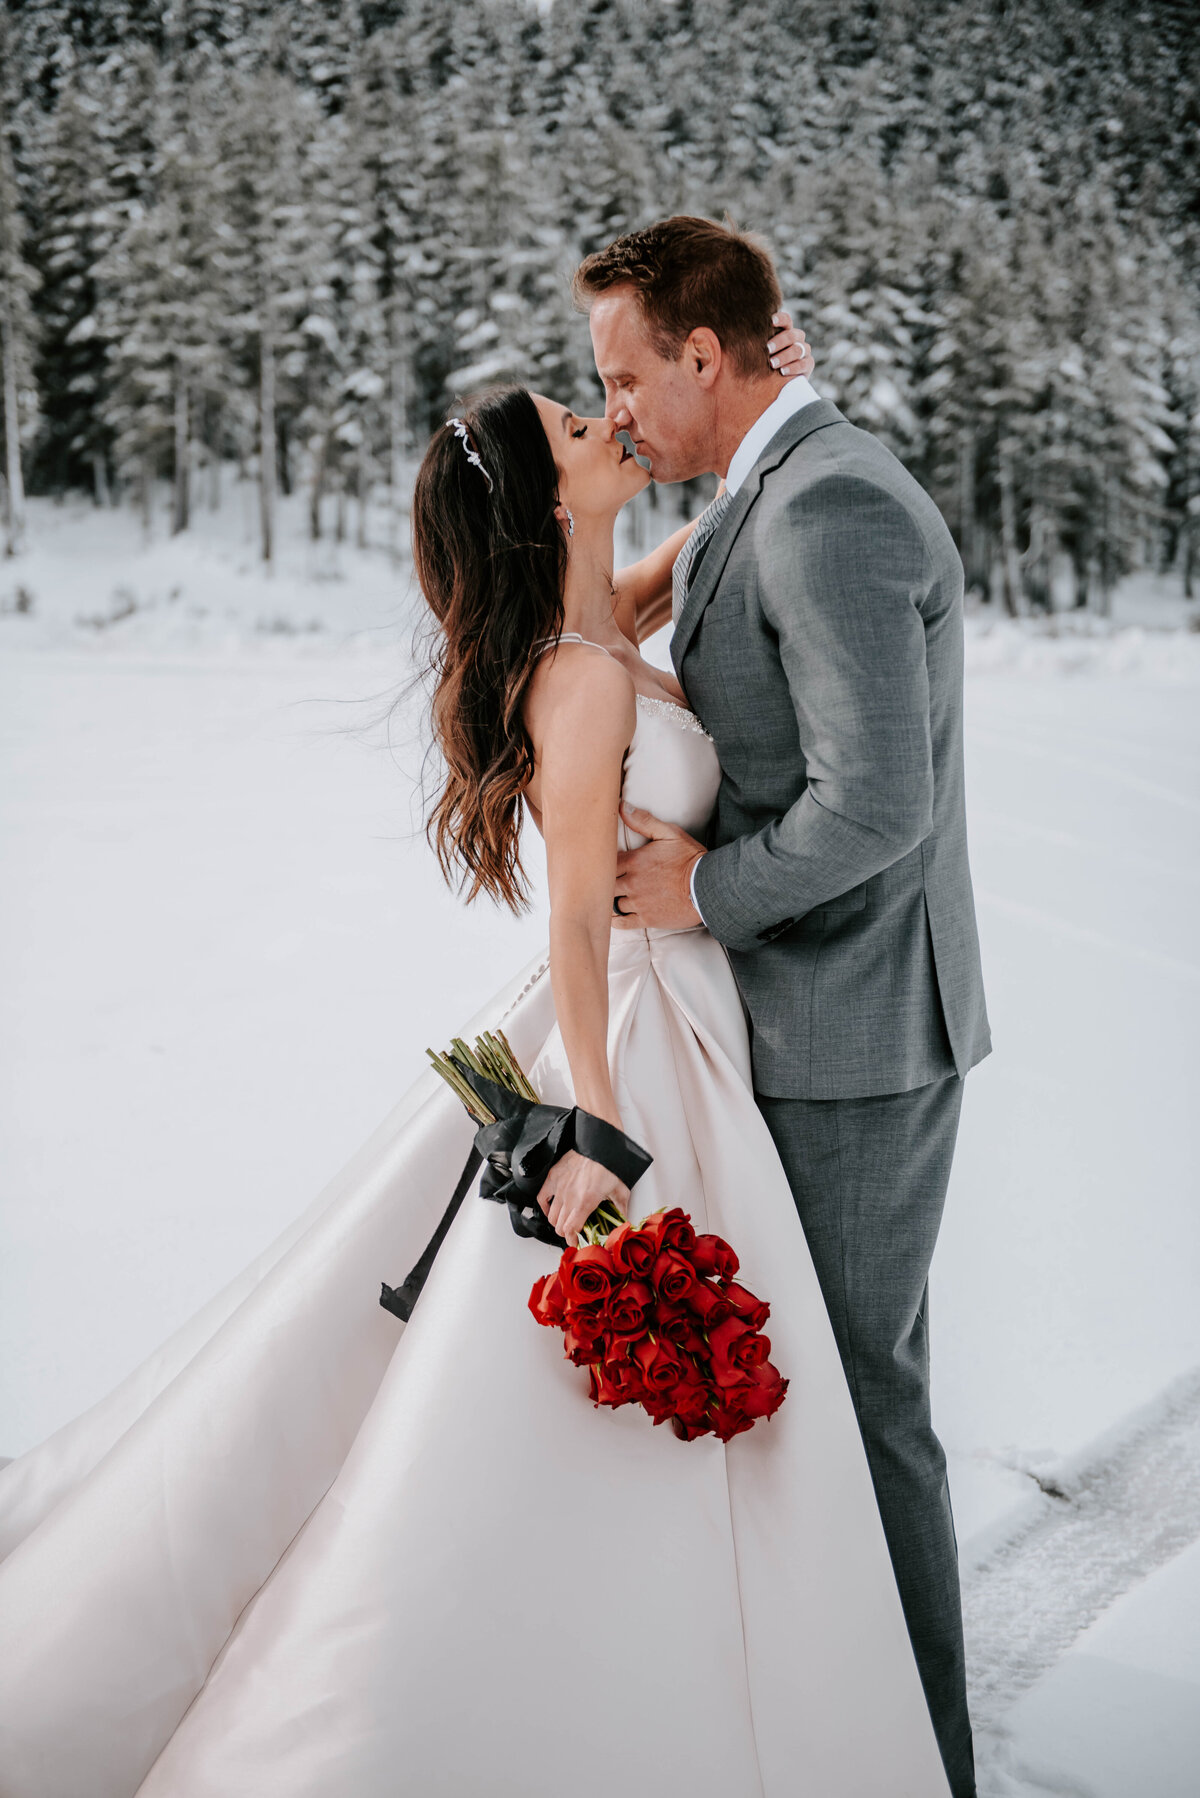 mt-bachelor-snow-winter-elopement-bend-oregon-wedding-photographer-2085